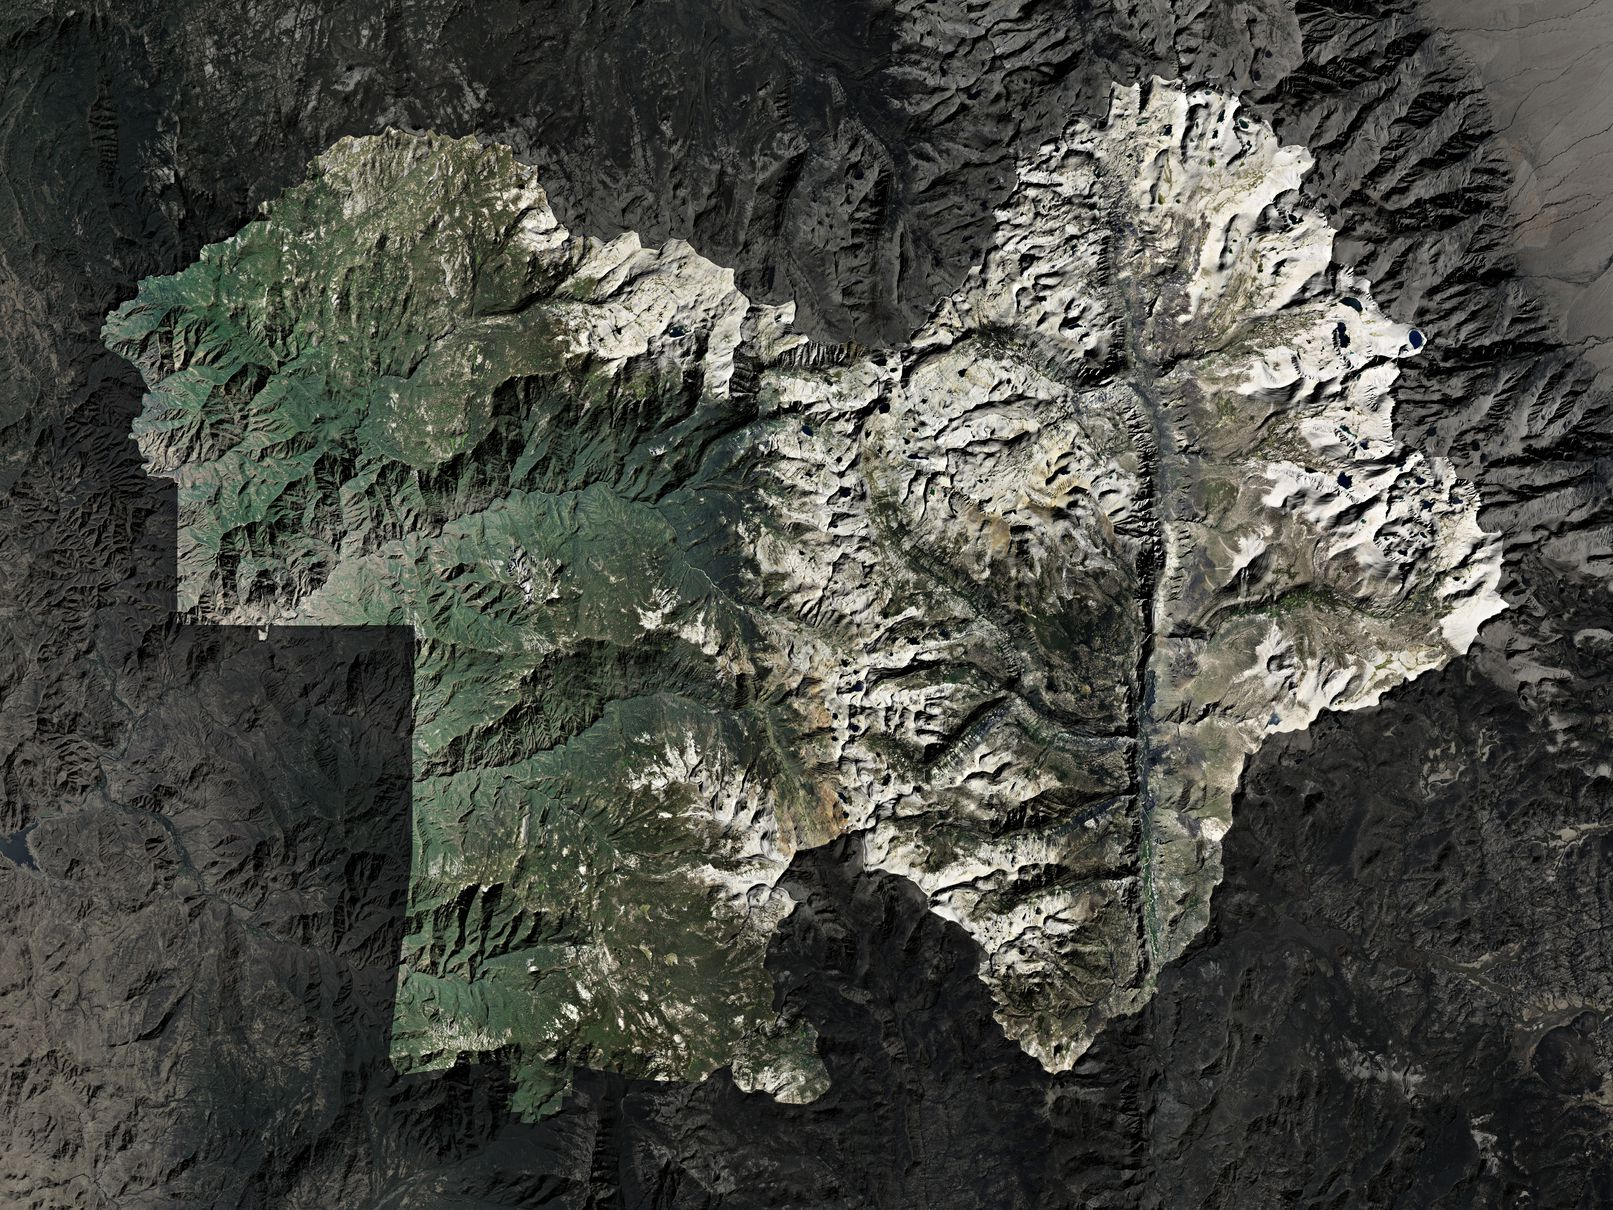 Map of Sequoia National Park